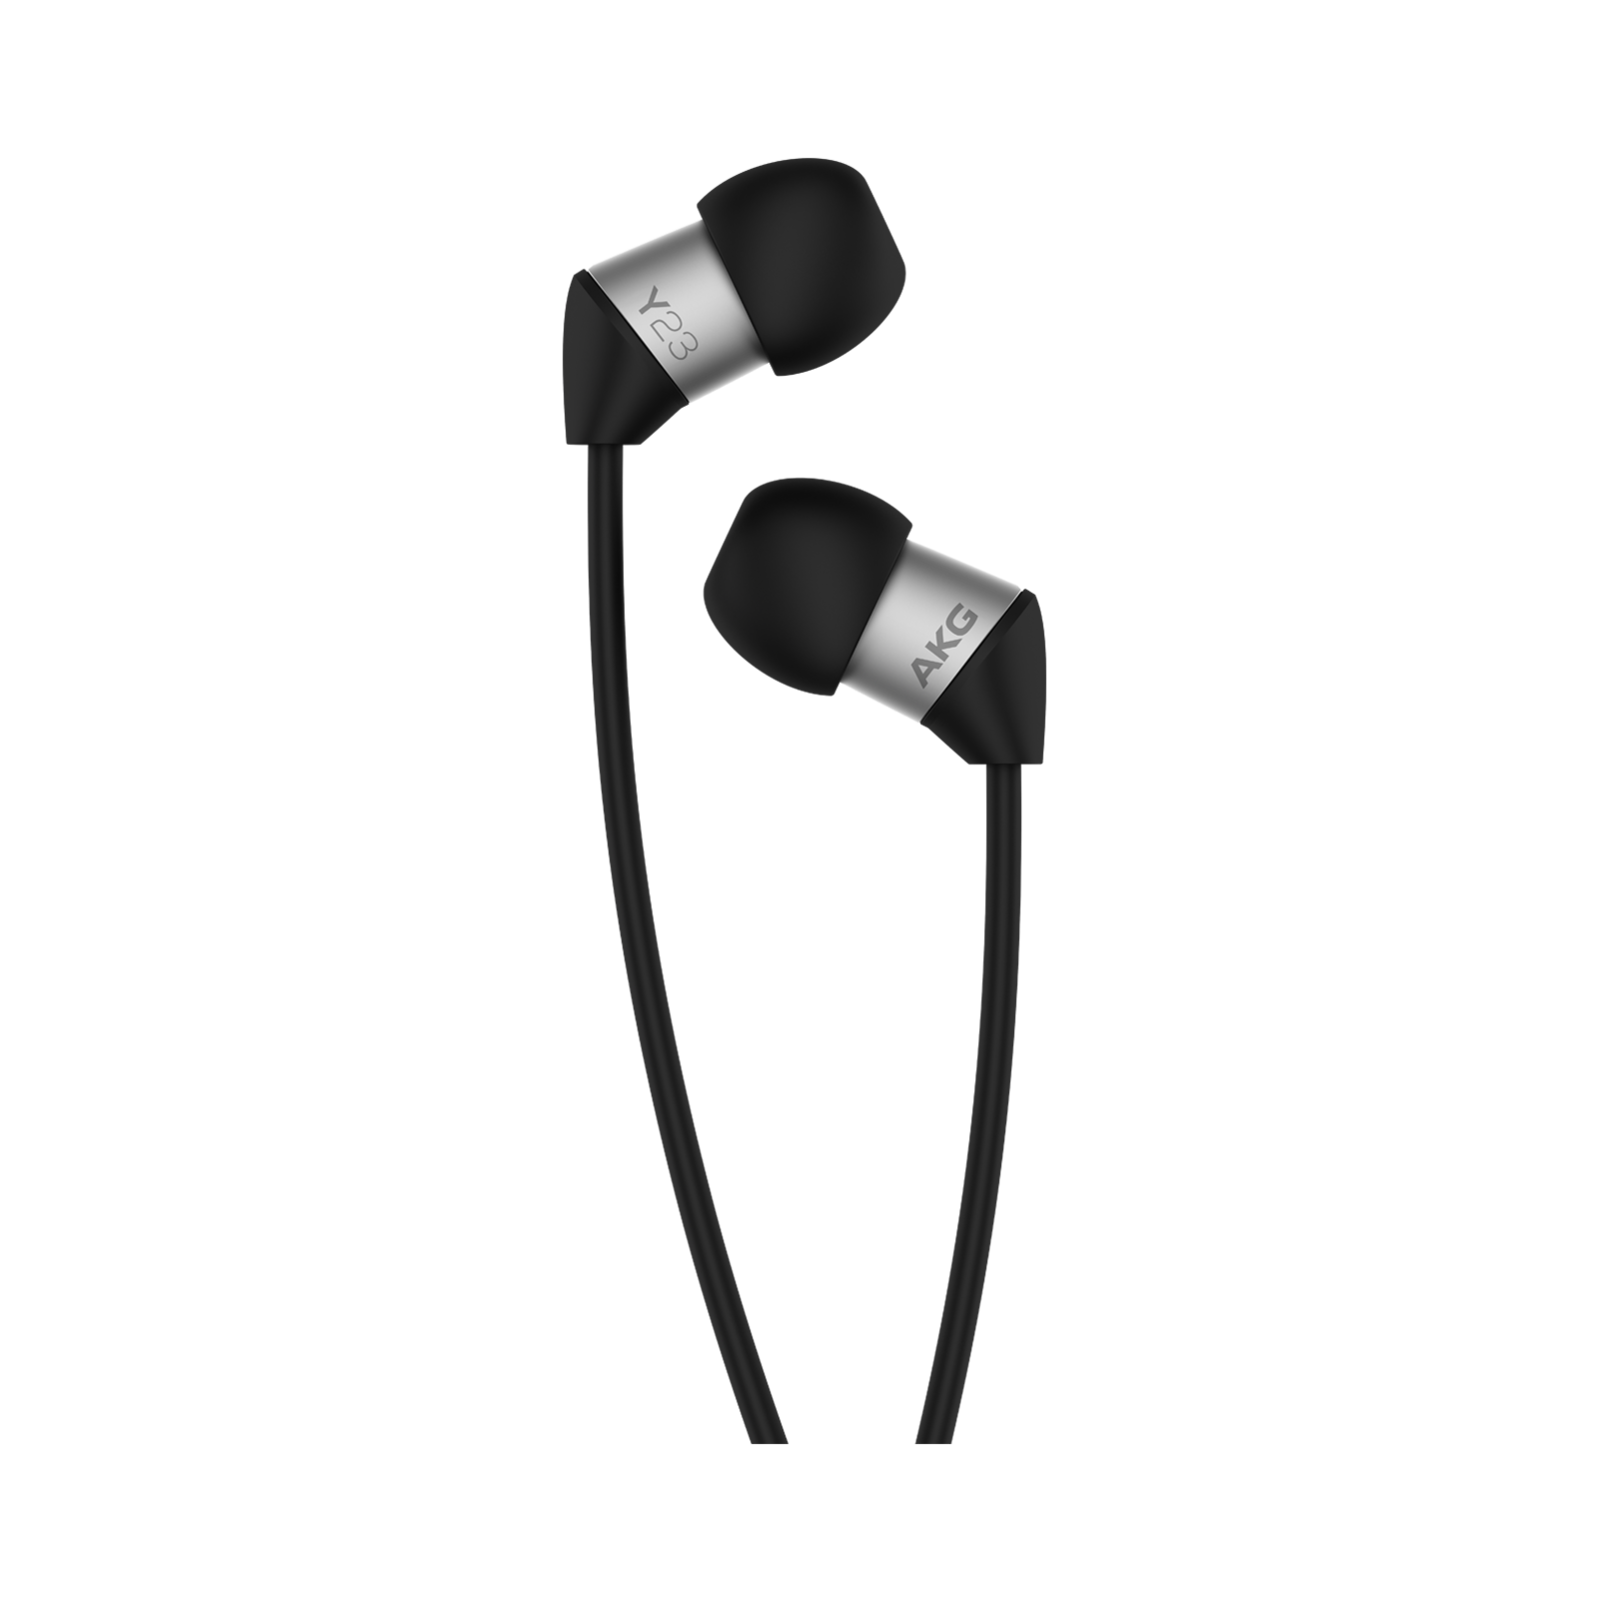 Y23U - Black - The smallest in-ear headphones with universal remote and microphone - Detailshot 2